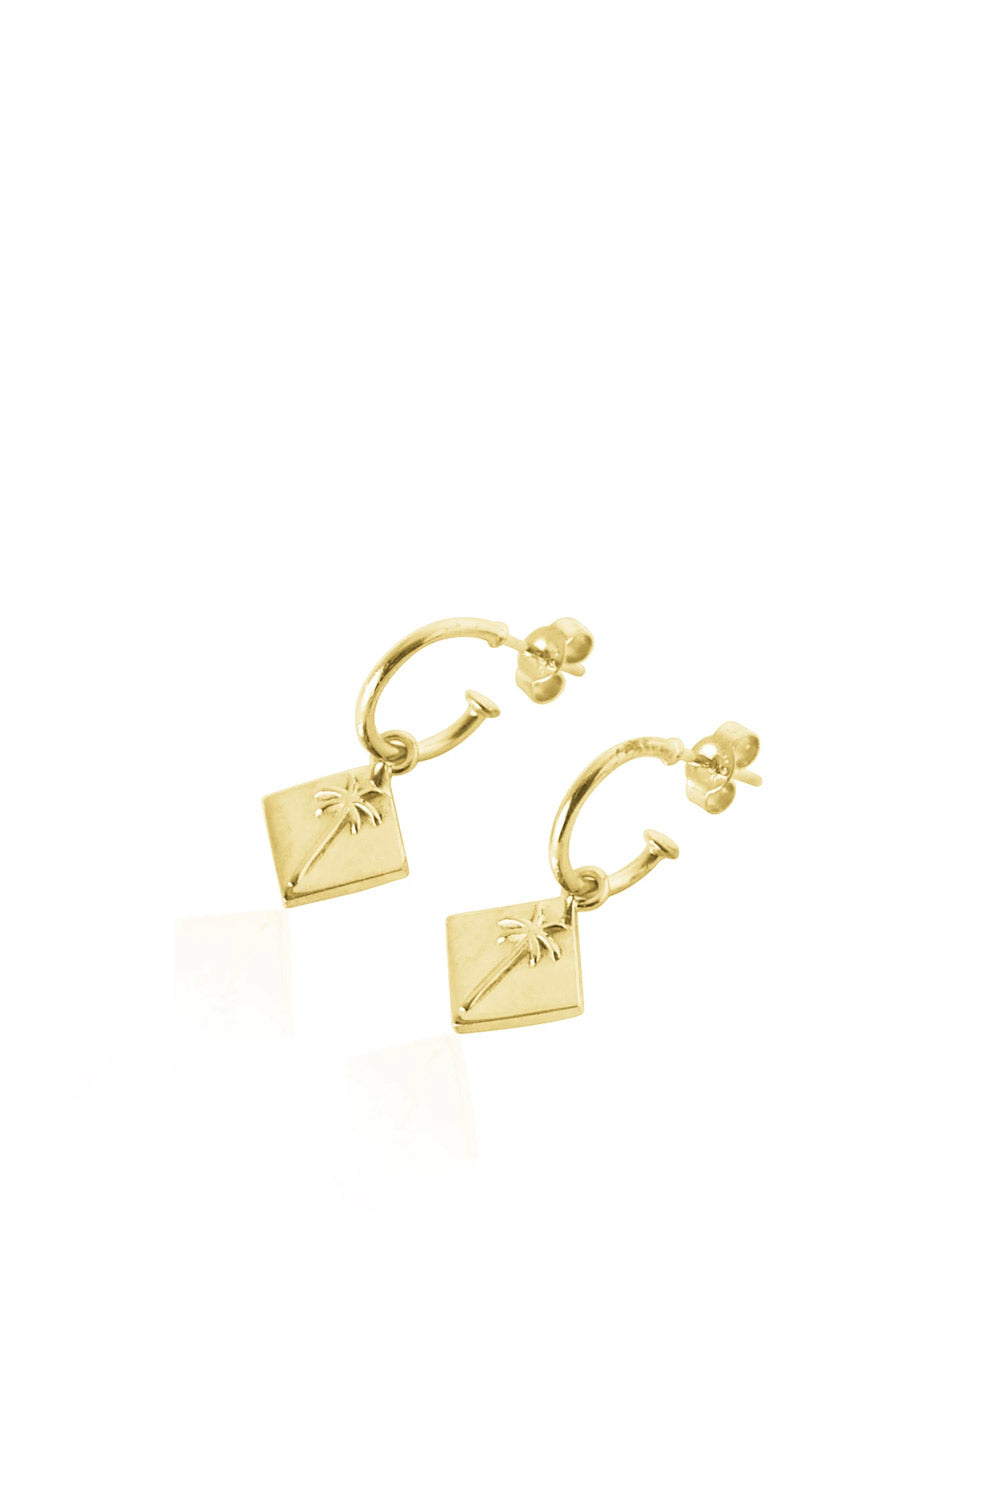 Luna Rose ~ Pacific Palms Earrings in Gold